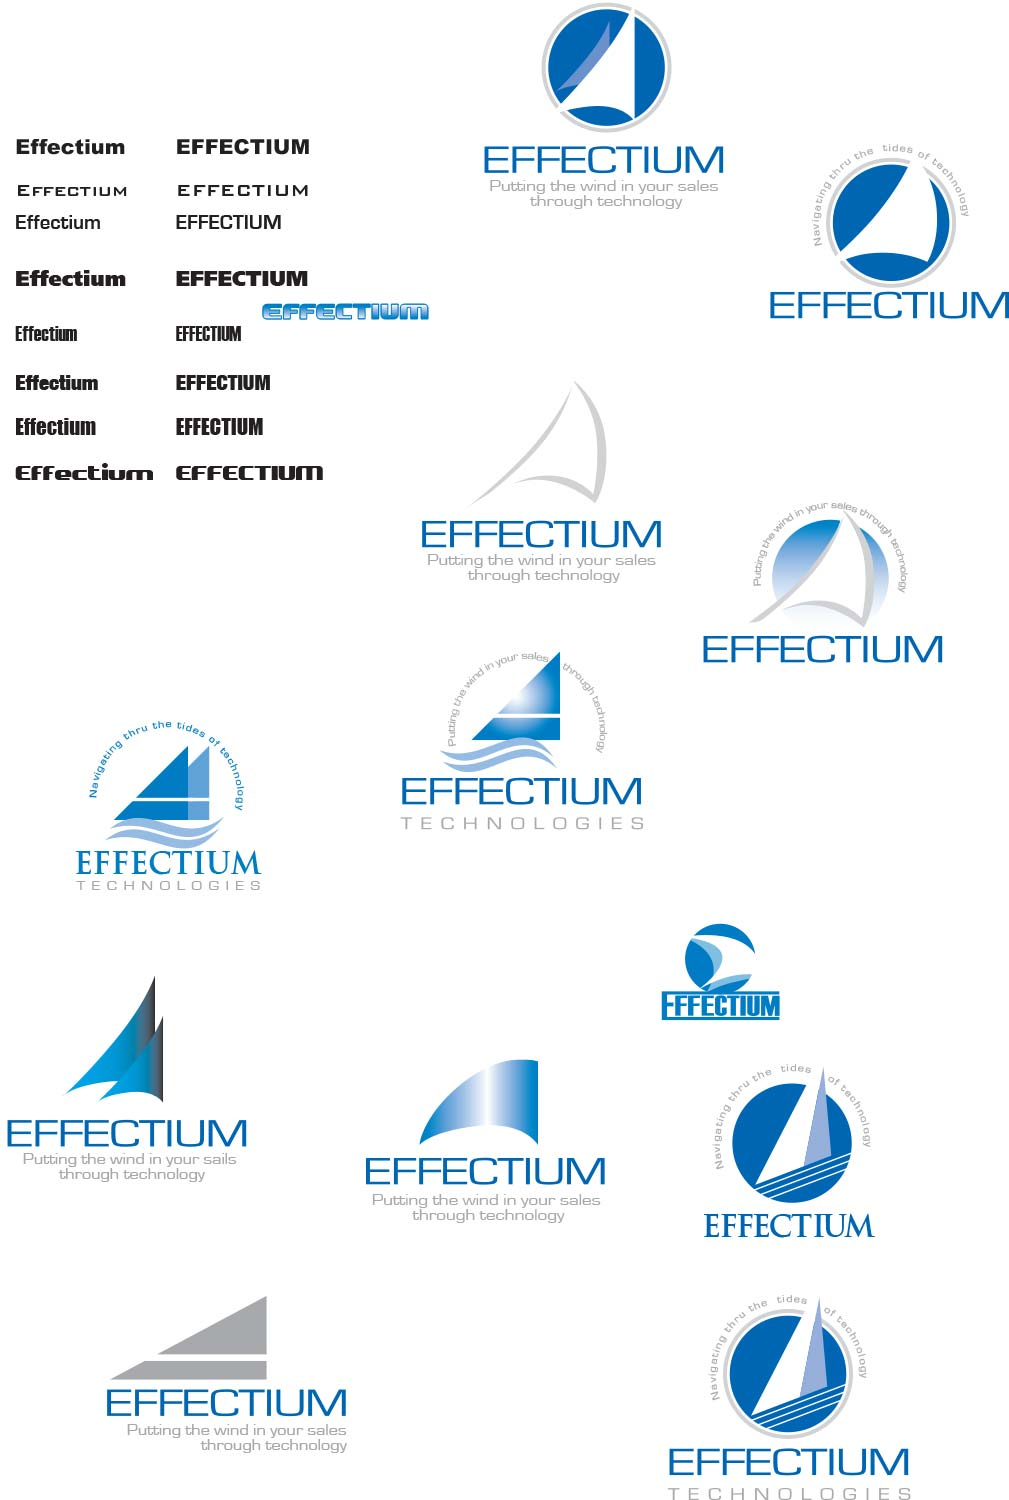 Halfway point in my Effectium logo/slogan project.